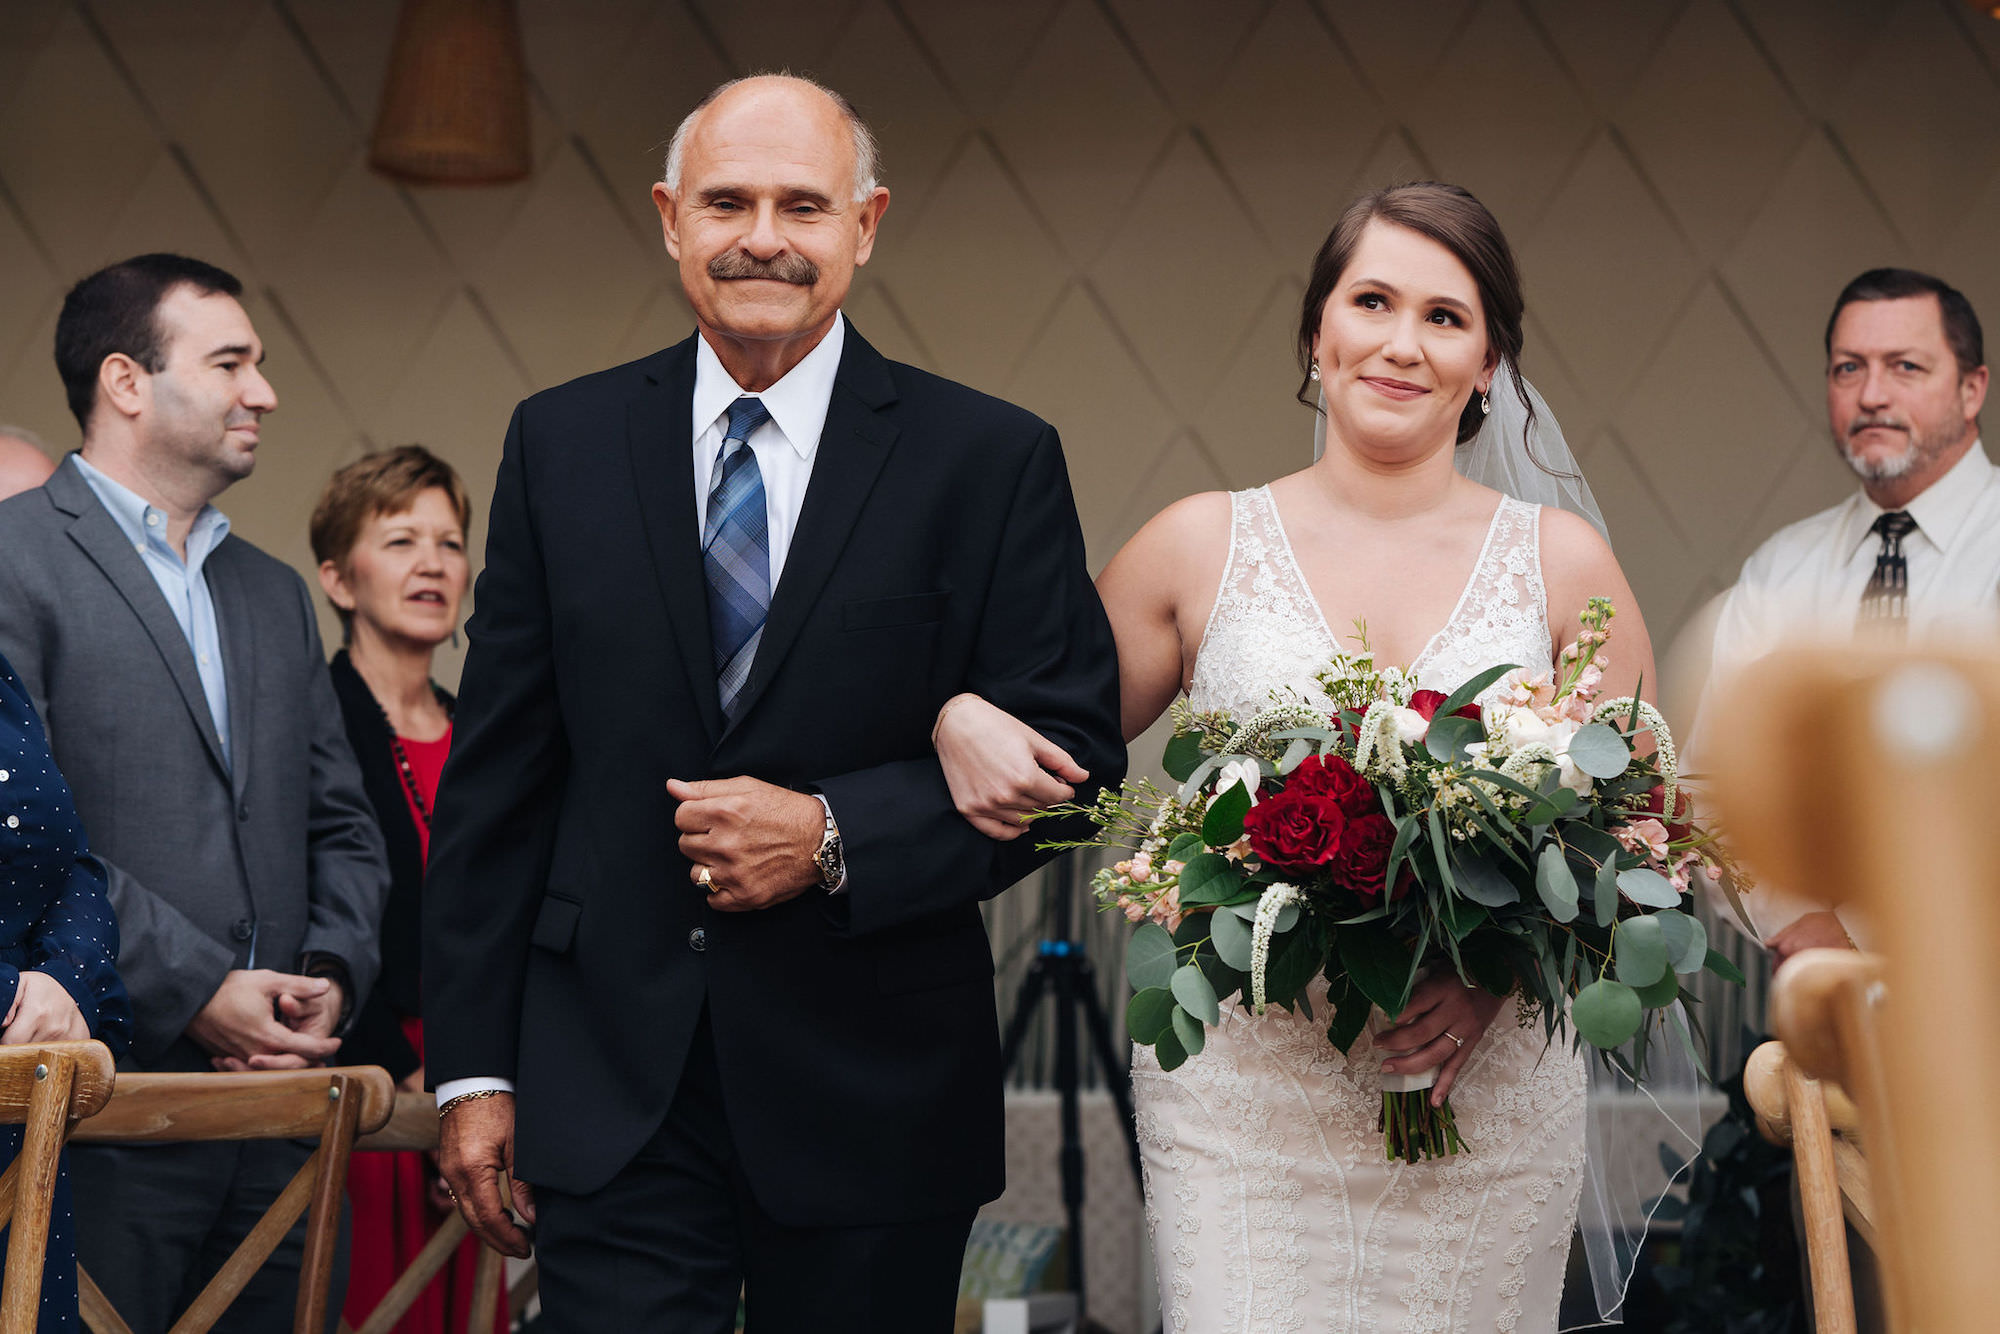 Bride Walking Down Aisle with Father   Lace V Neck Wedding Gown   Blush Red Garnet Greenery Natural Boho Bouquet